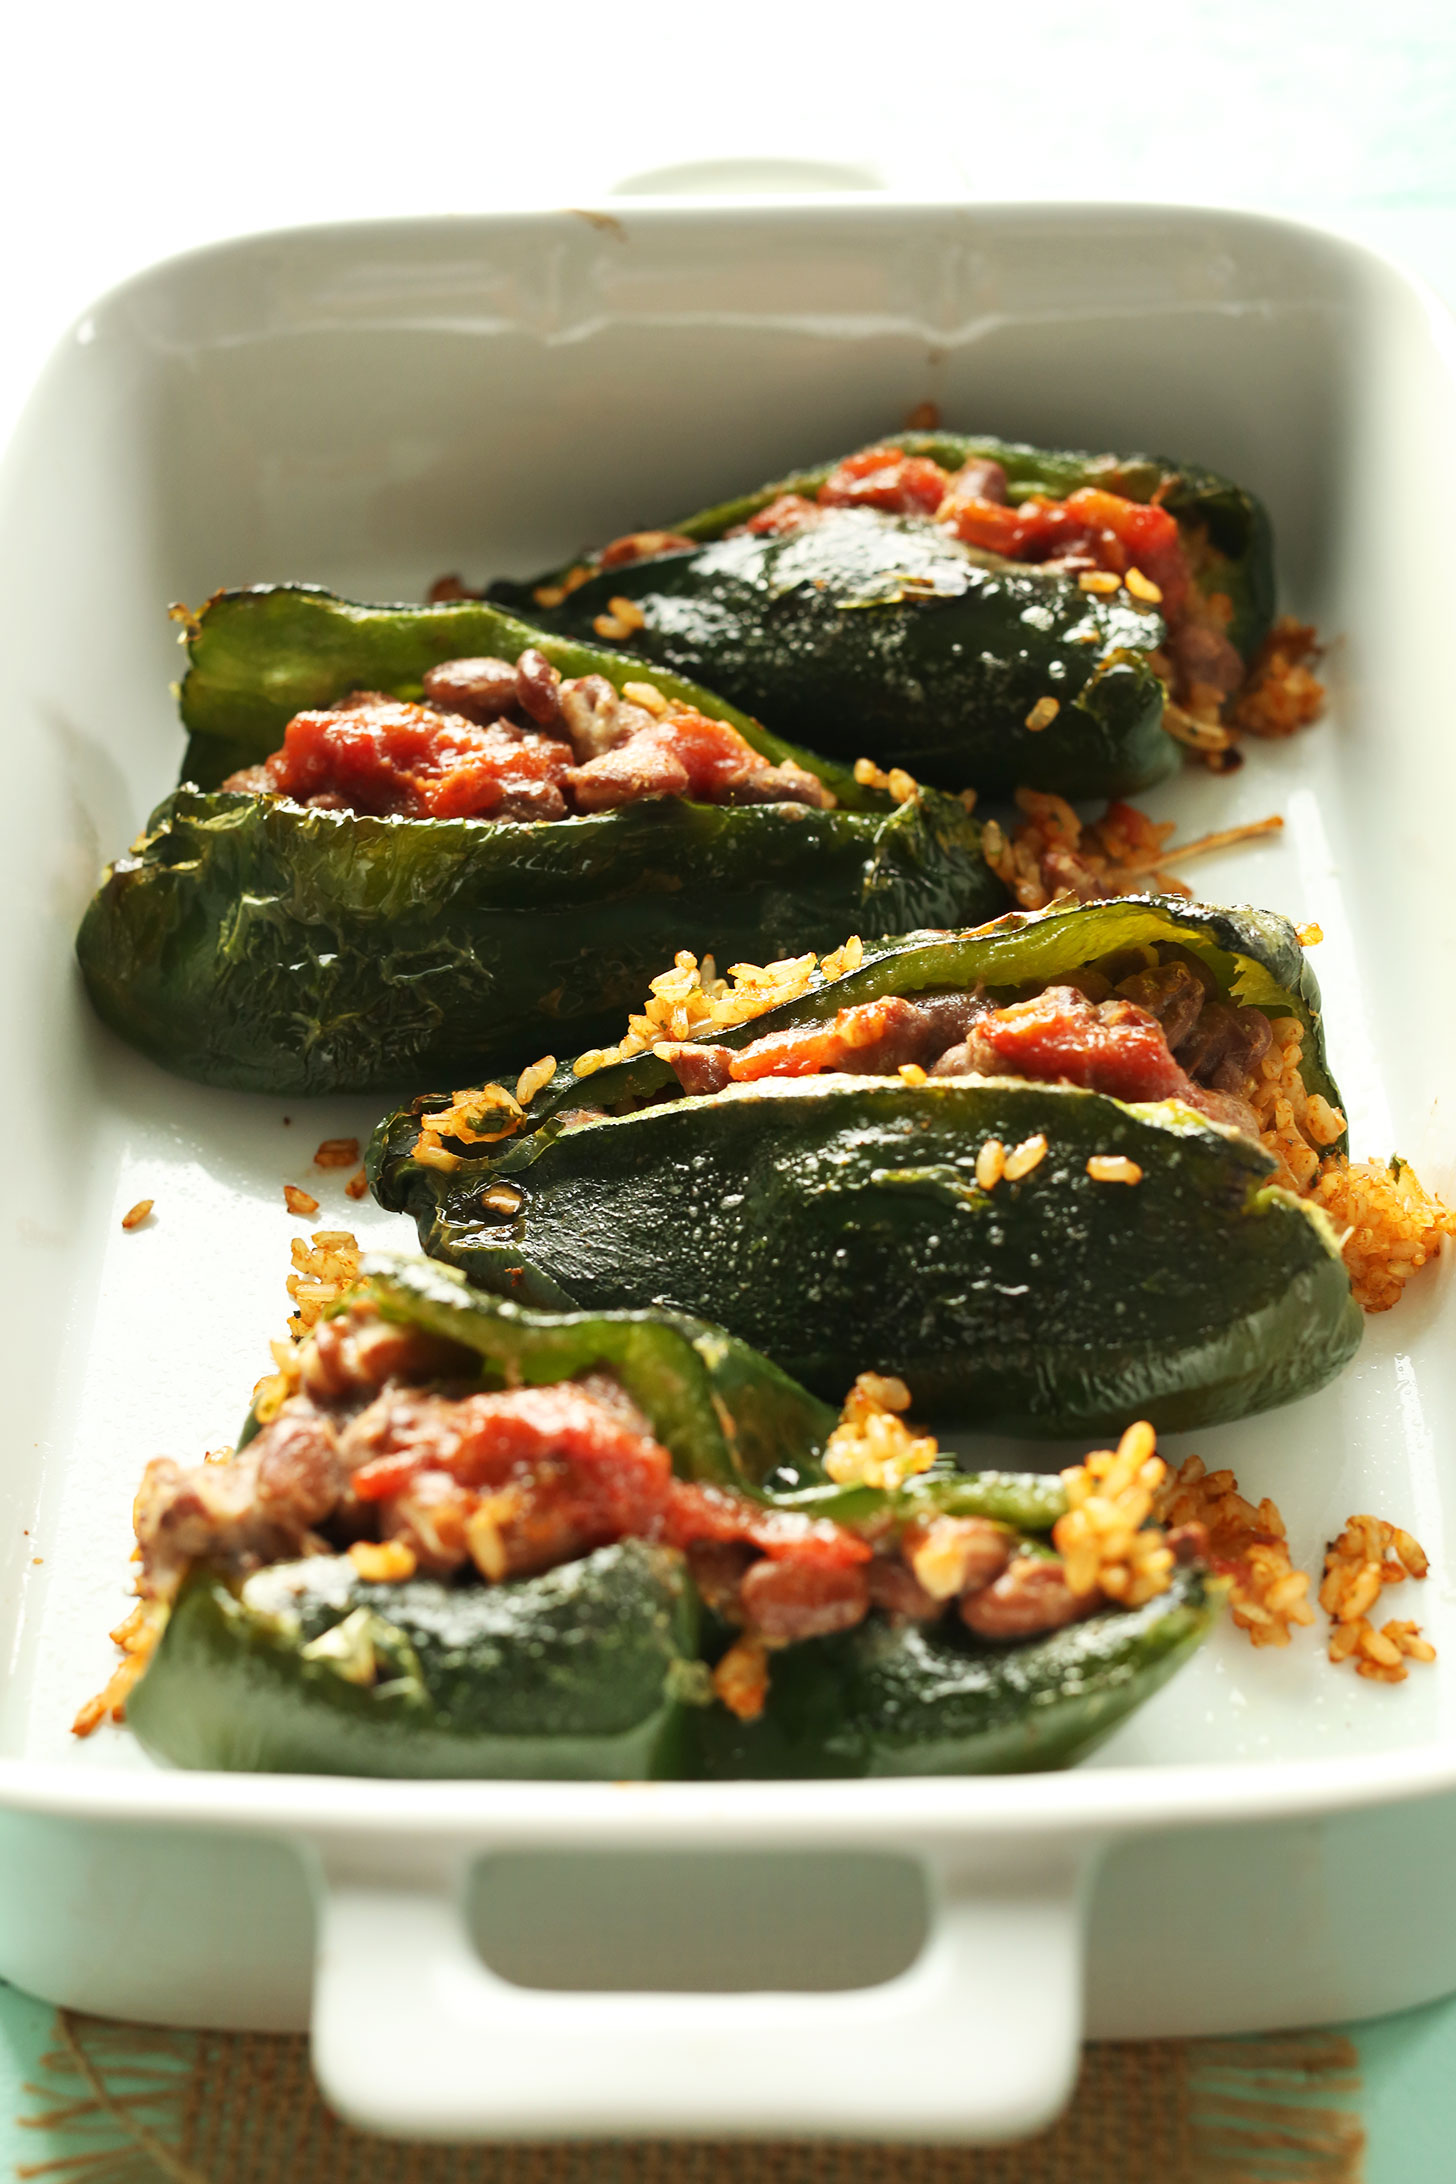 Baking pan with Stuffed Poblano Peppers for a simple gluten-free vegan dinner